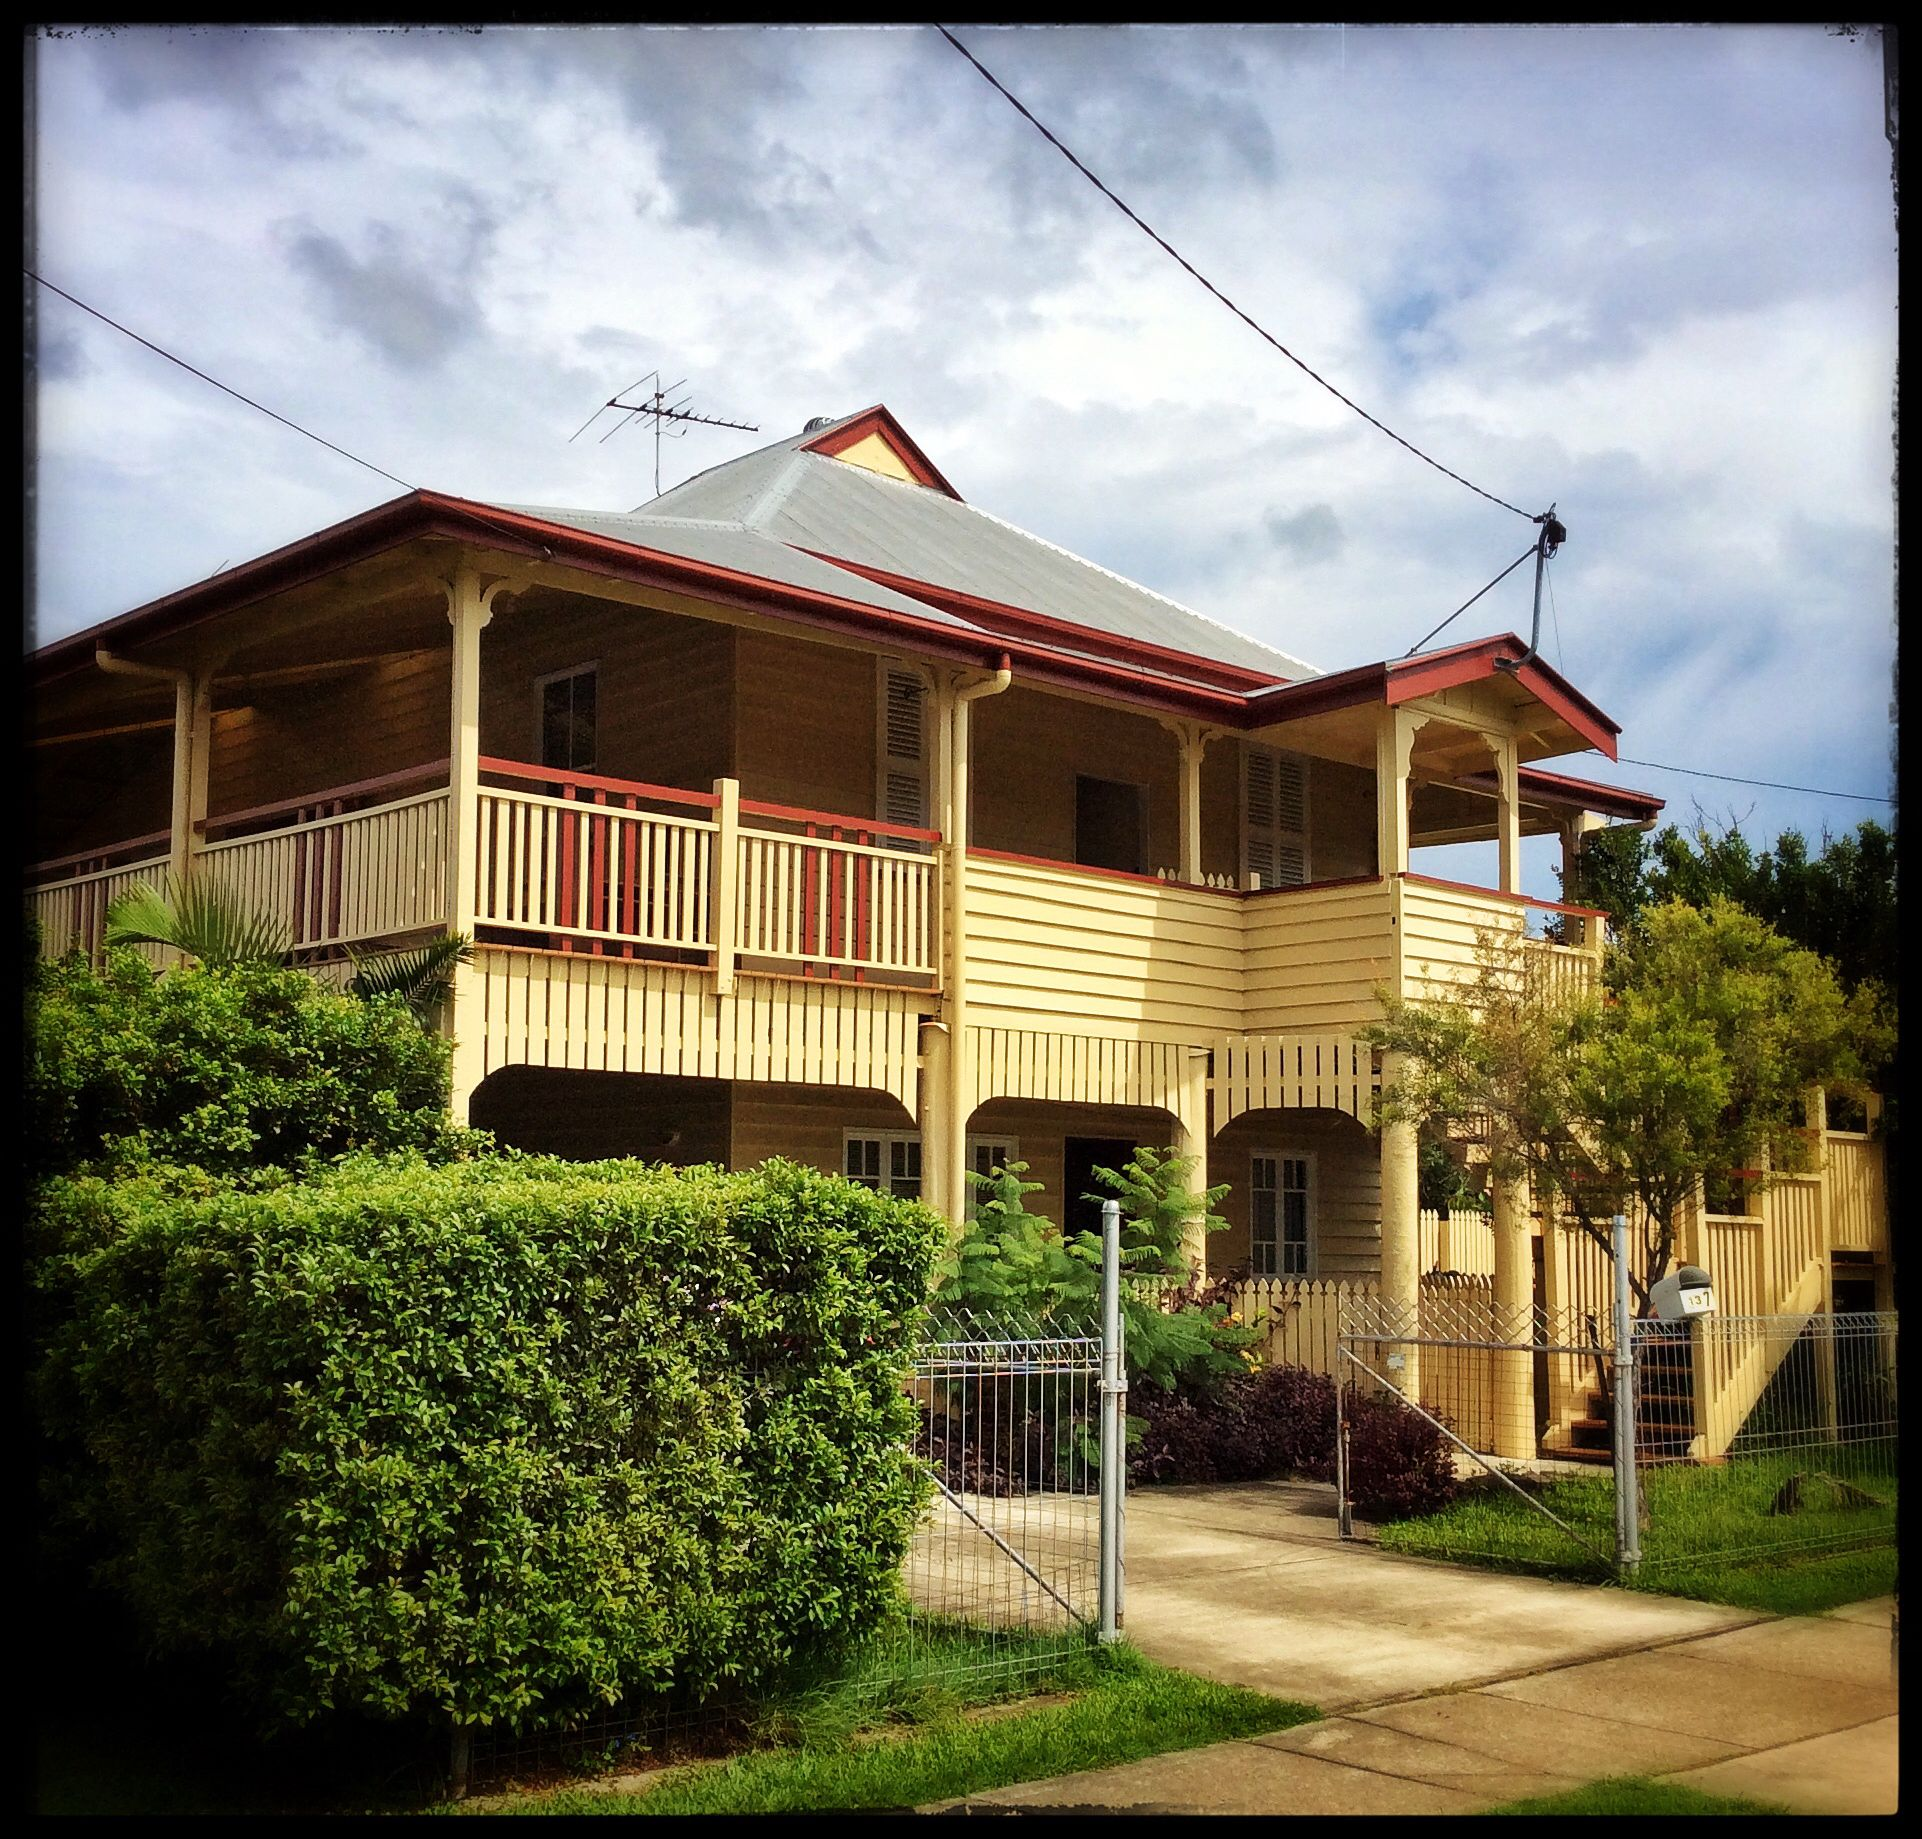 'Old Queenslander' In Cannon Hill, Qld. March 2015